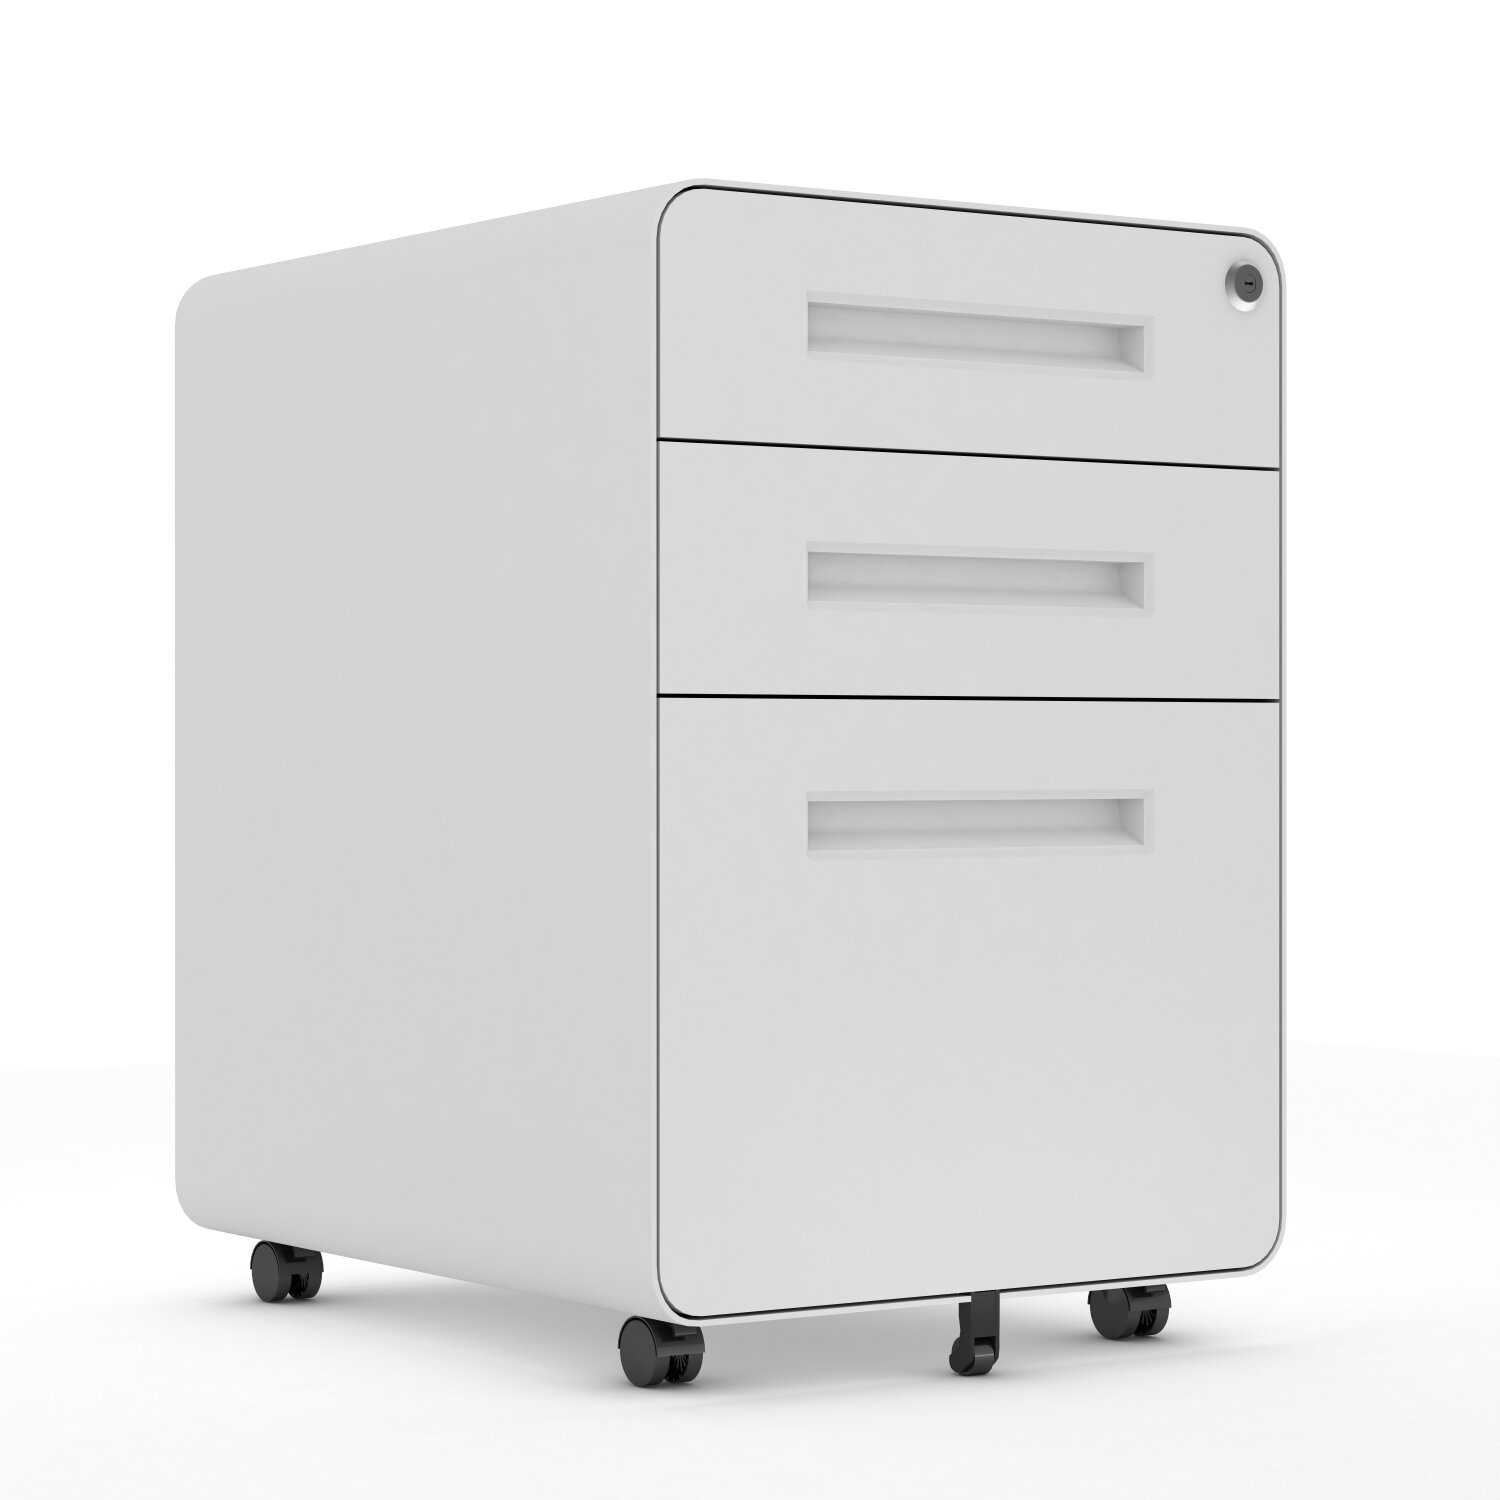 Fireproof Small Filing Cabinets You Ll Love In 2021 Wayfair